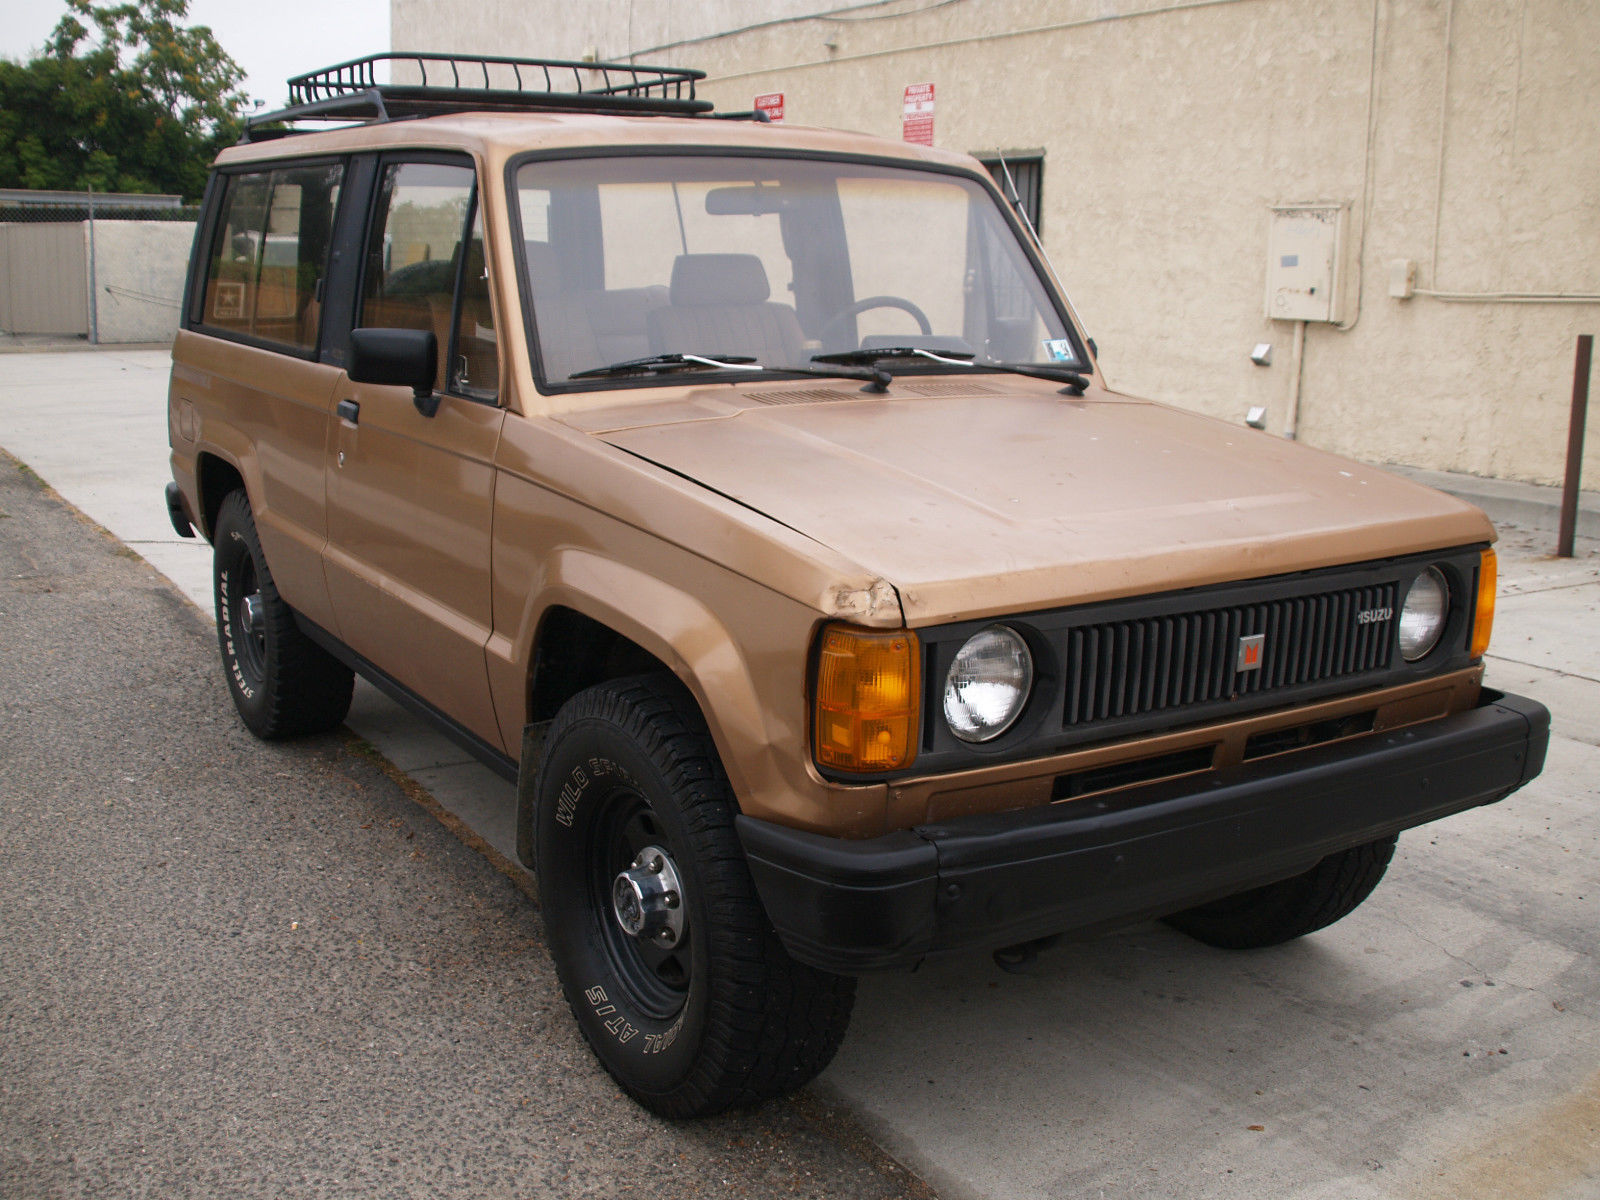 1986 isuzu trooper dlx turbo diesel 4x4 2 door manual transmission turbo tuesday. Black Bedroom Furniture Sets. Home Design Ideas